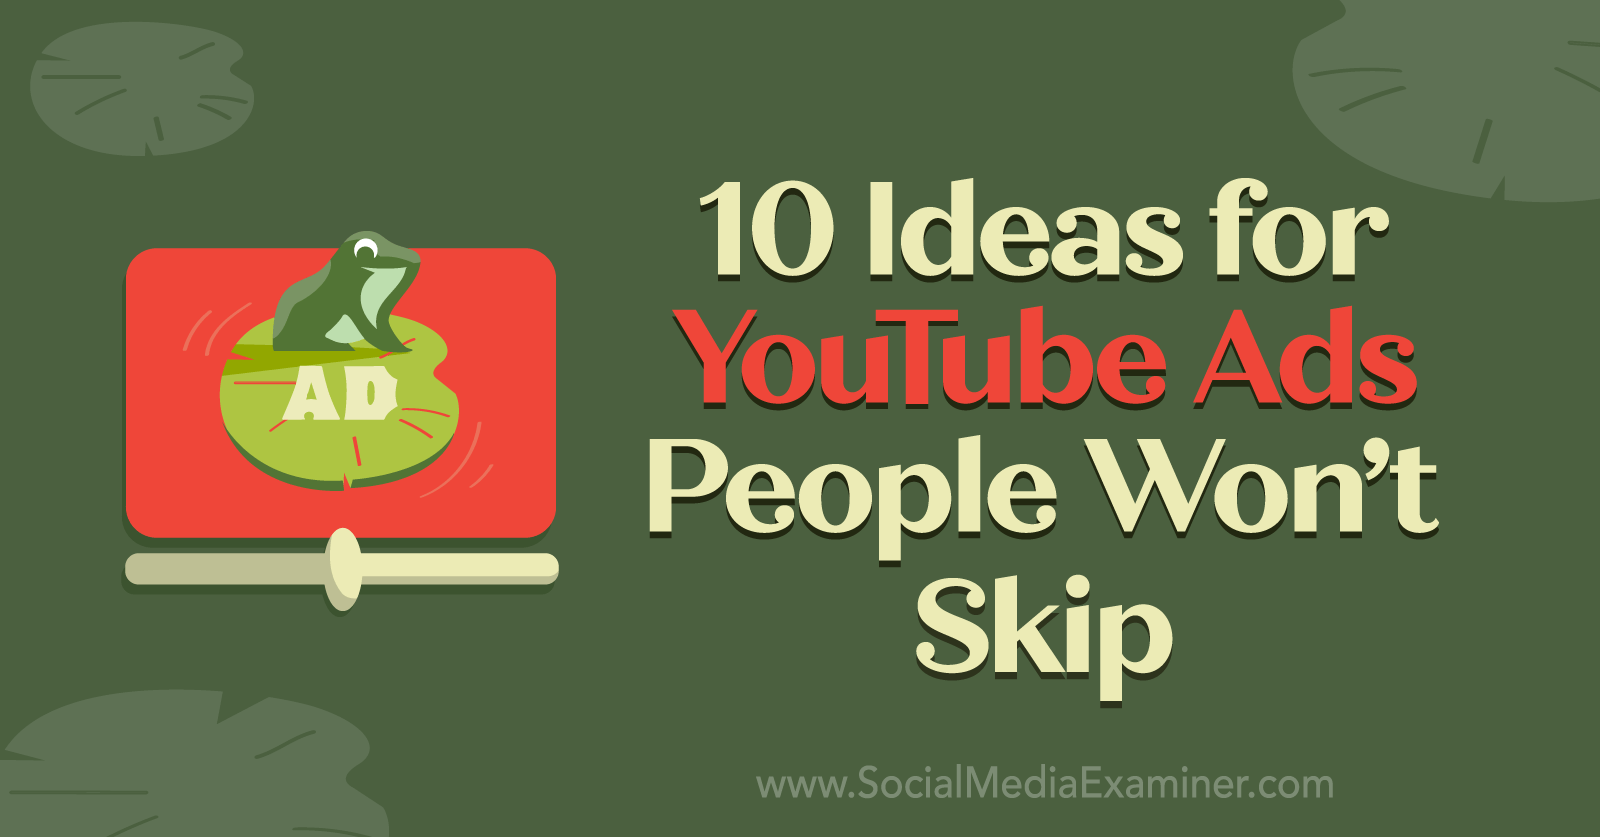 10 Ideas for YouTube Ads People Won't Skip by Anna Sonnenberg on Social Media Examiner.